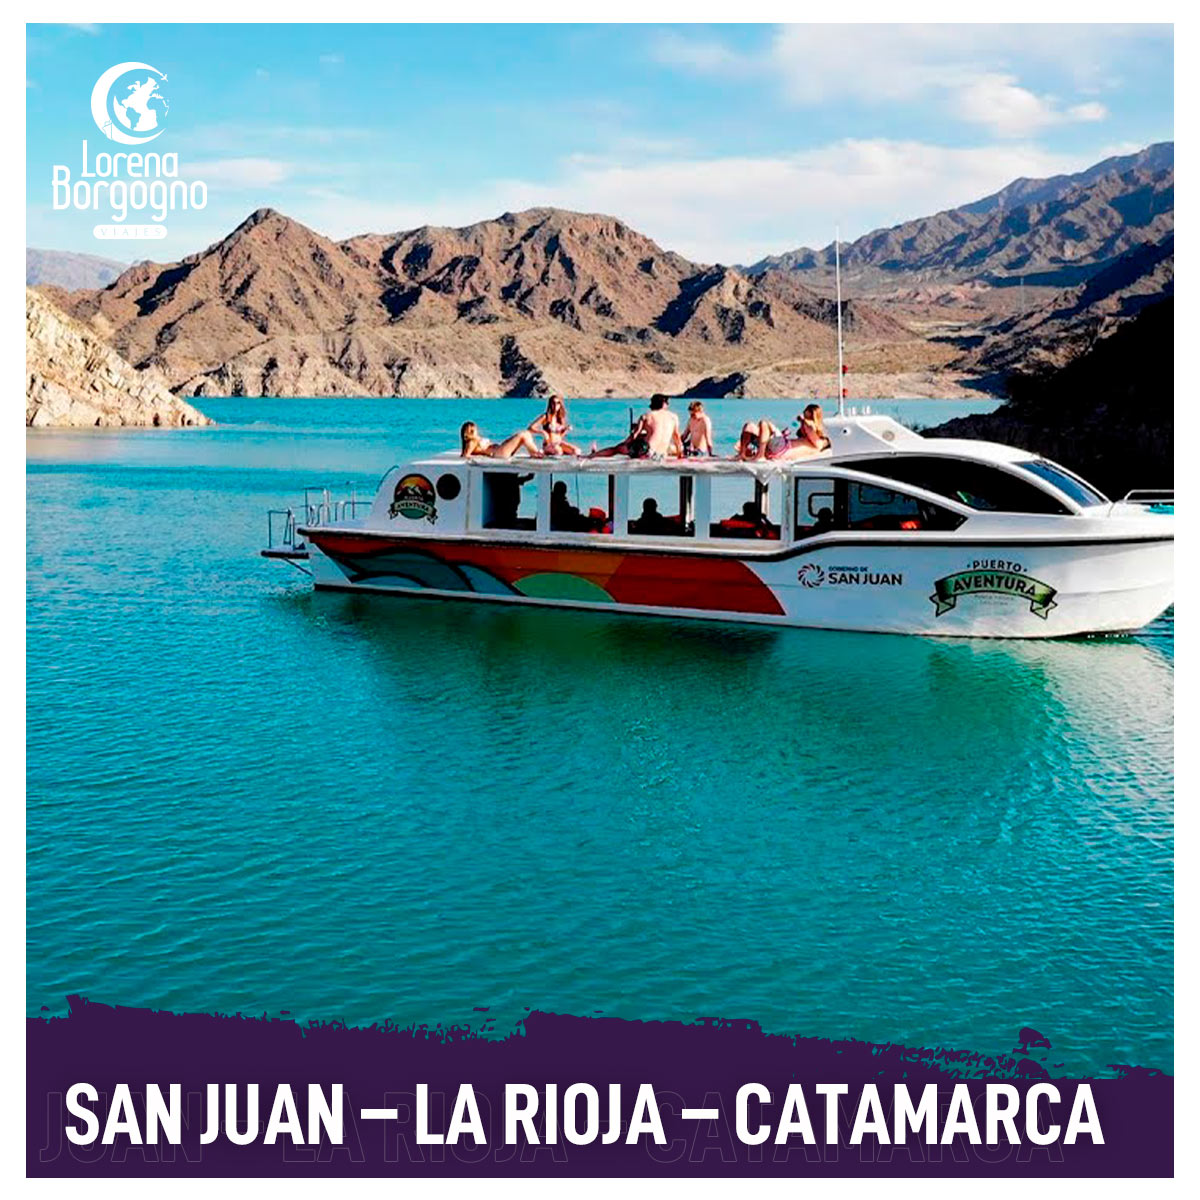 SAN JUAN – LA RIOJA – CATAMARCA (IT)